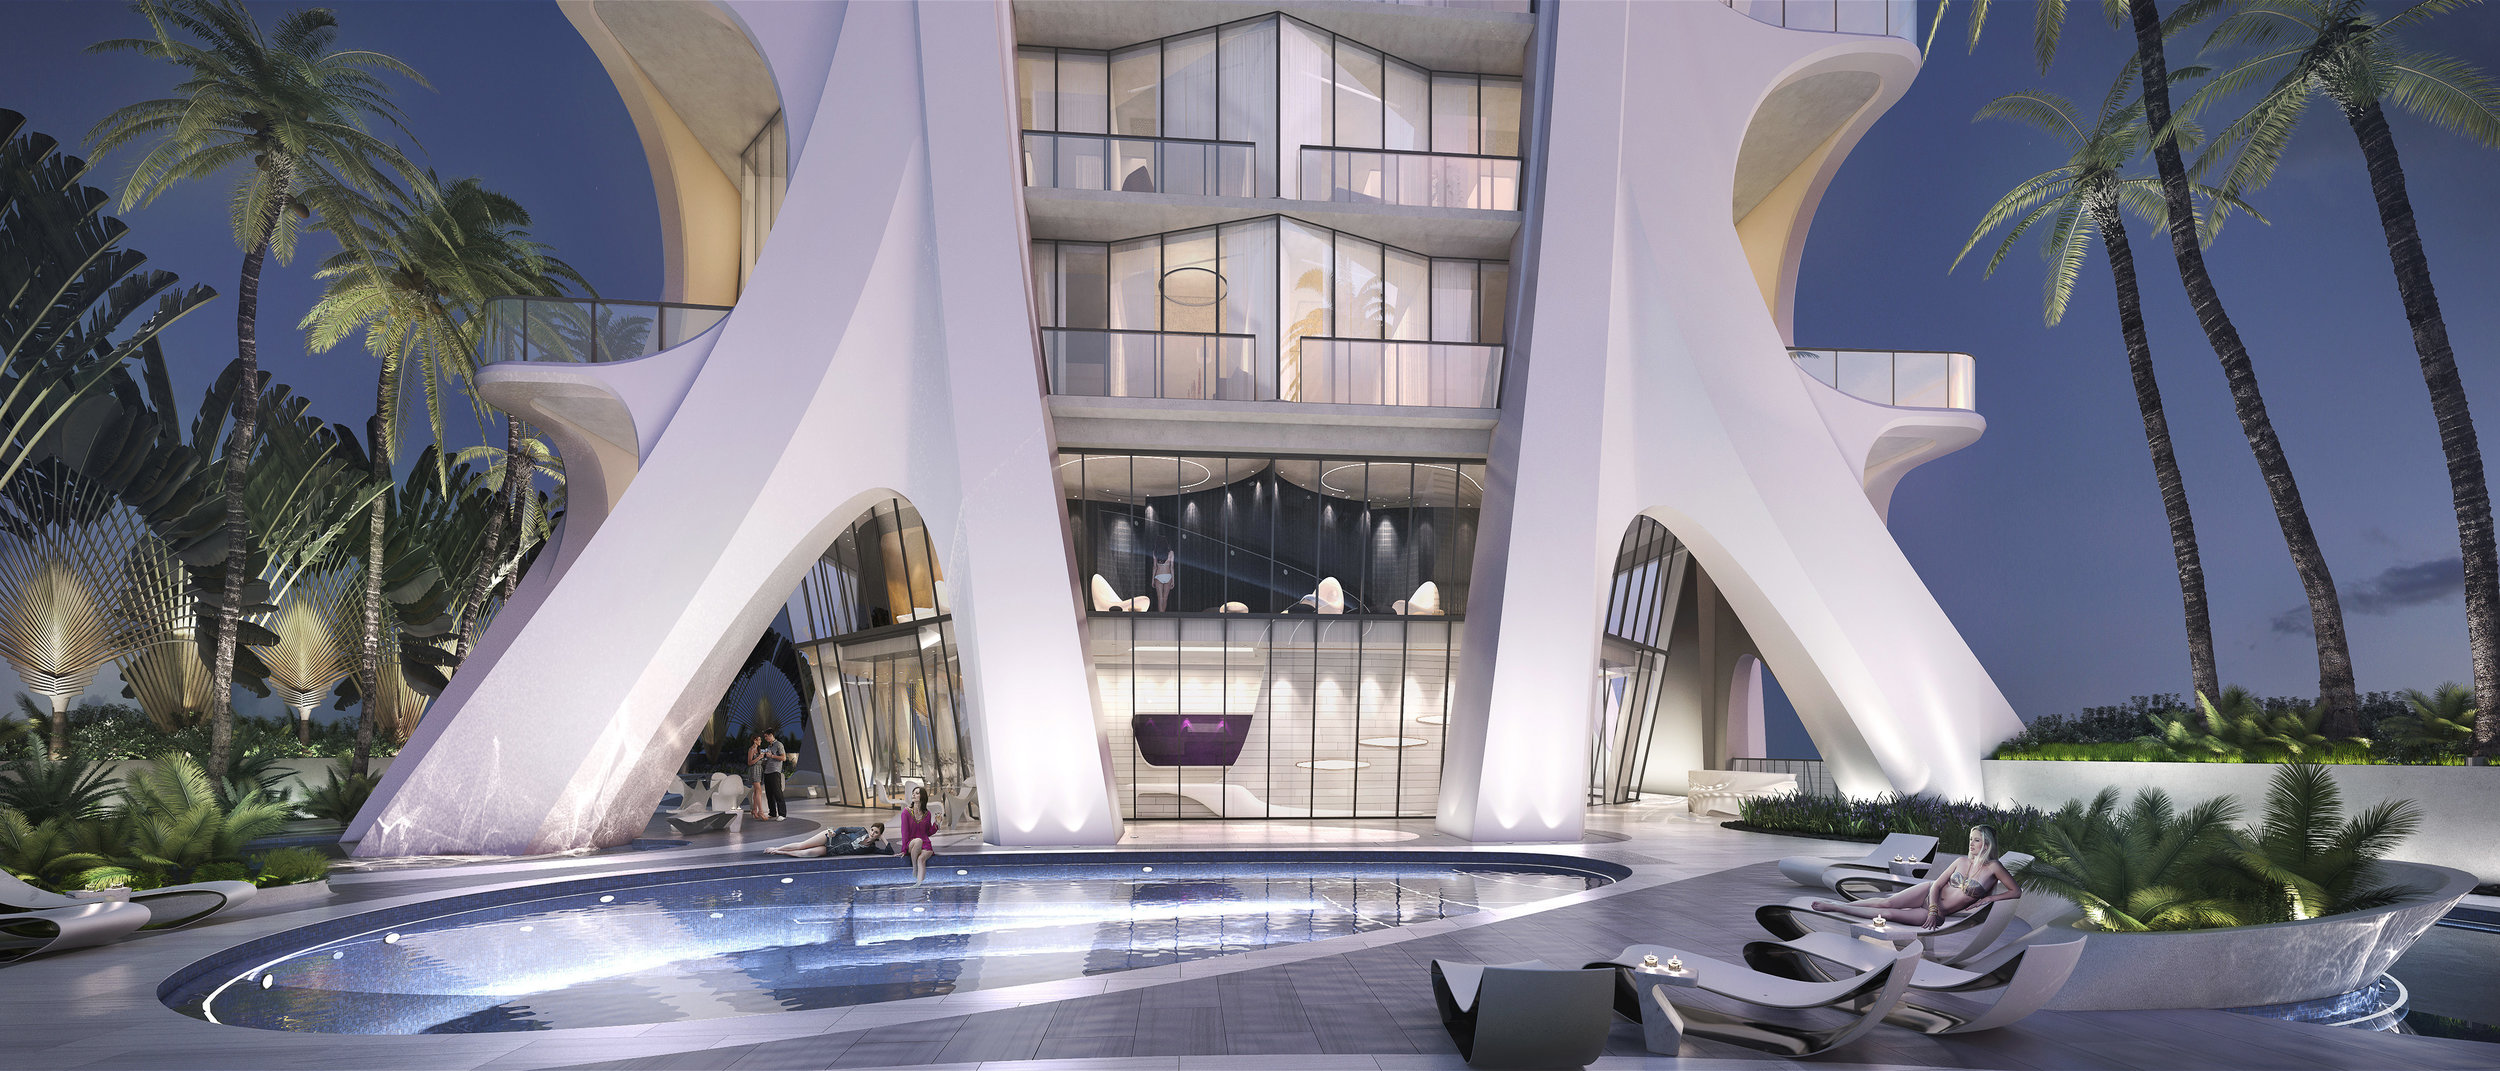 One Thousand Musuem Residences by Zaha Hadid Architects, prices starting from 5,650,000 USD through ONE Sotheby's International Realty (18).jpg